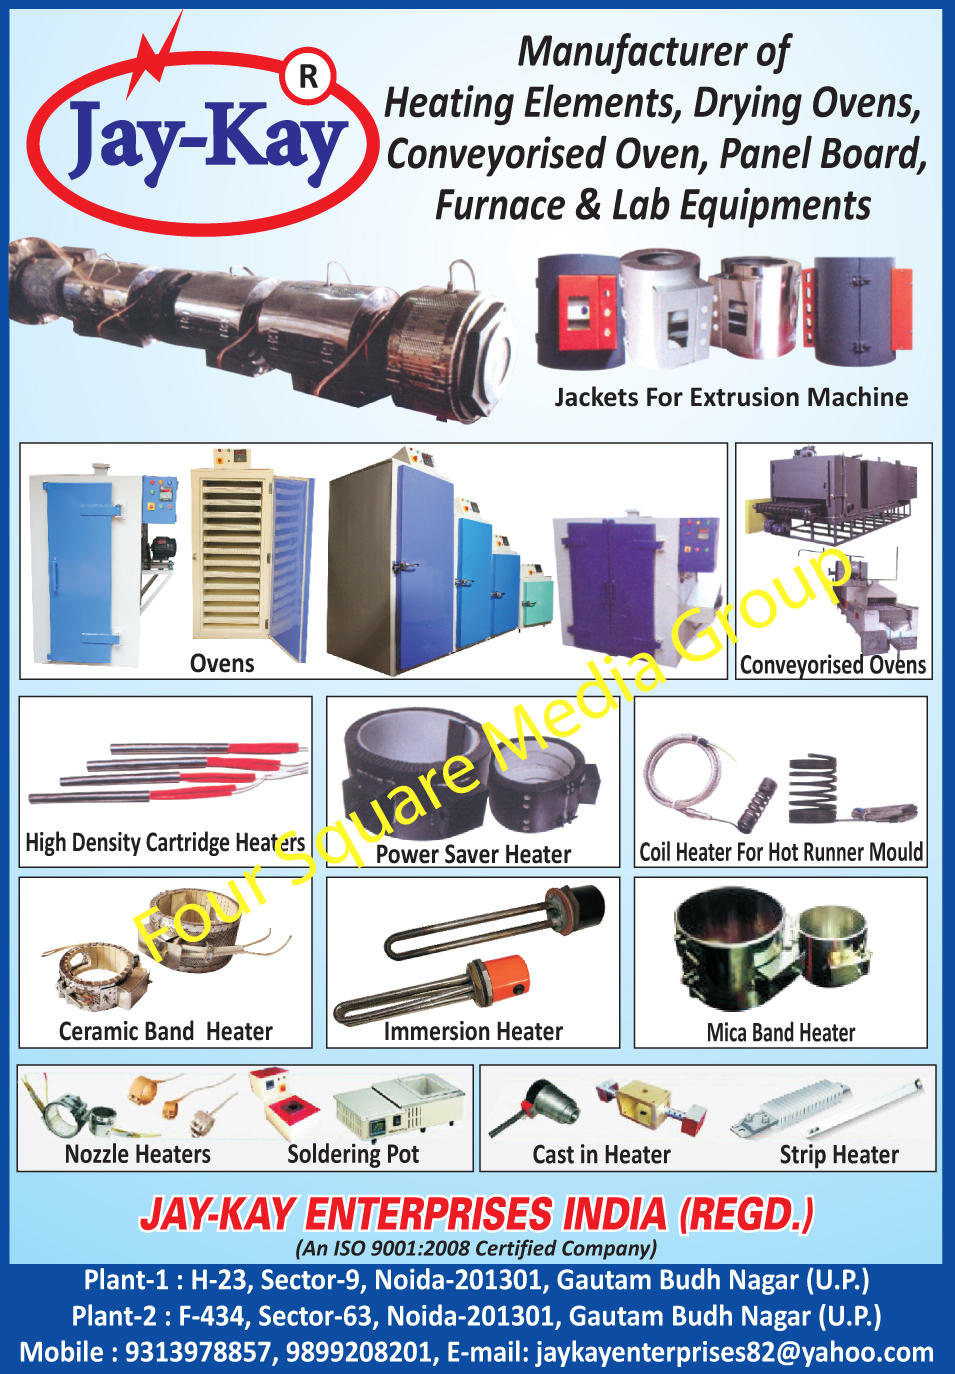 Heating Elements, Drying Ovens, Conveyorised Ovens, Panel Boards, Furnace Equipments, Lab Equipments, Extrusion Machine Jackets, Ovens, Conveyorised Ovens, High Density Cartridge Heaters, Power Saver Heaters, Hot Runner Mould Coil Heaters, Ceramic Band Heaters, Immersion Heaters, Mica Band Heaters, Nozzle Heaters, Soldering Pots, Cast in Heaters, Strip Heaters